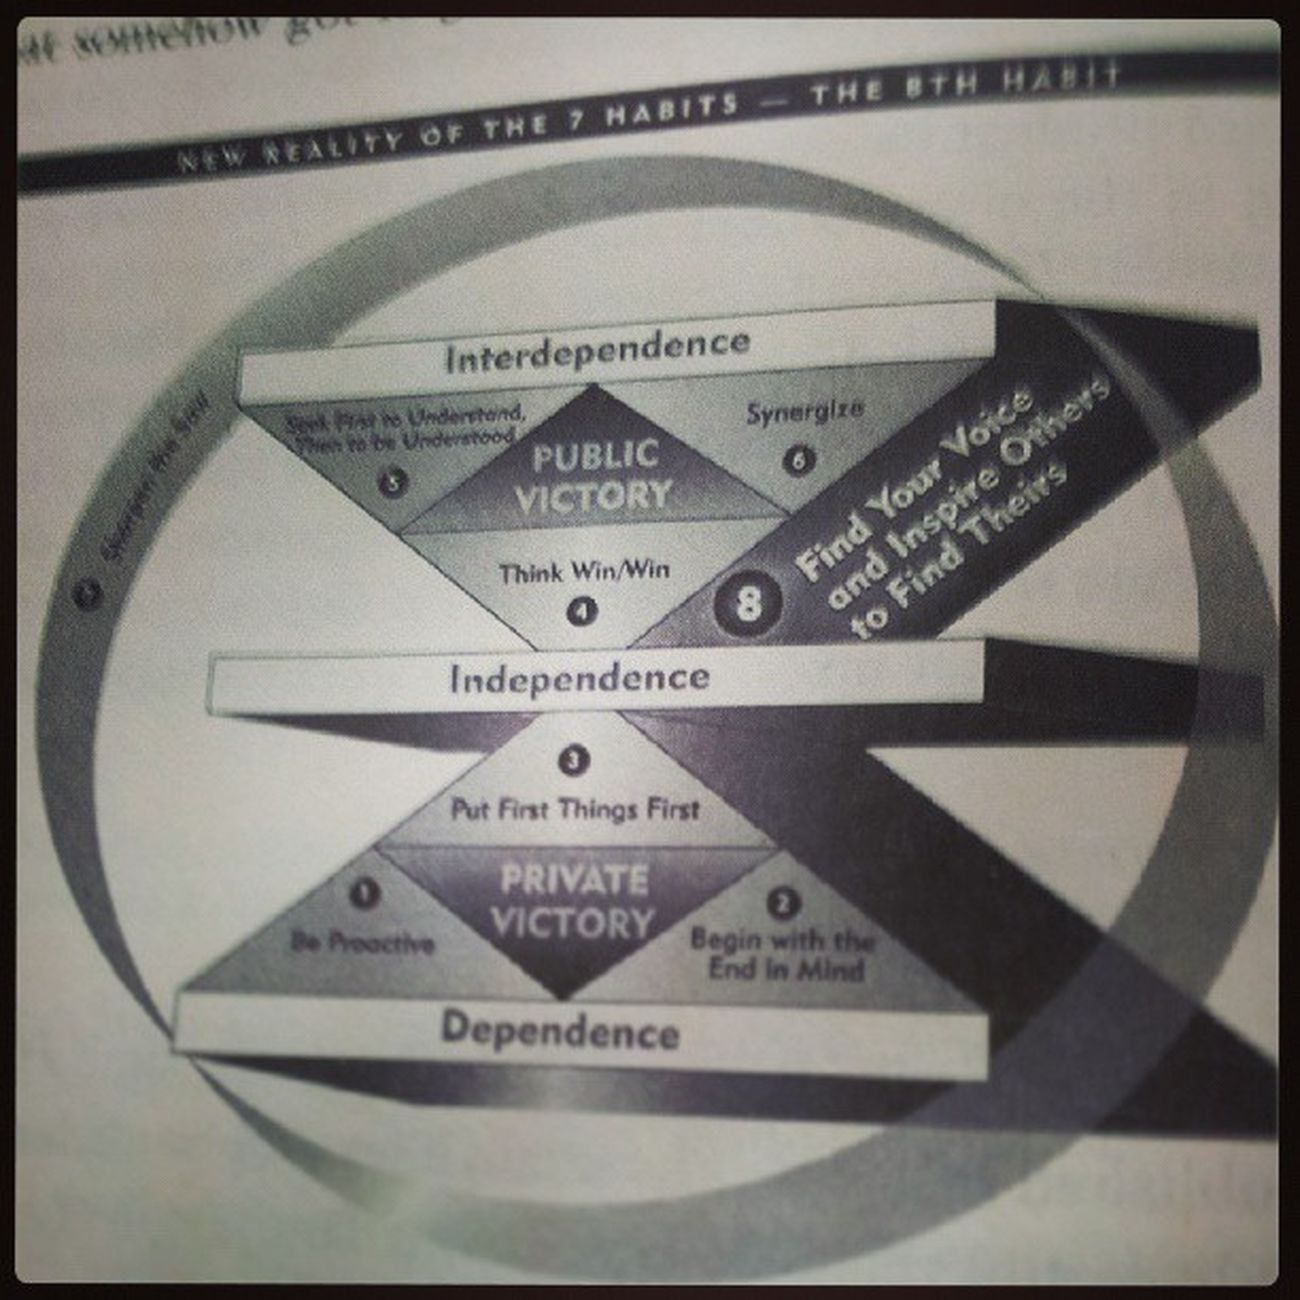 New reality of the 7 habits - the 8th habit StephenCovey